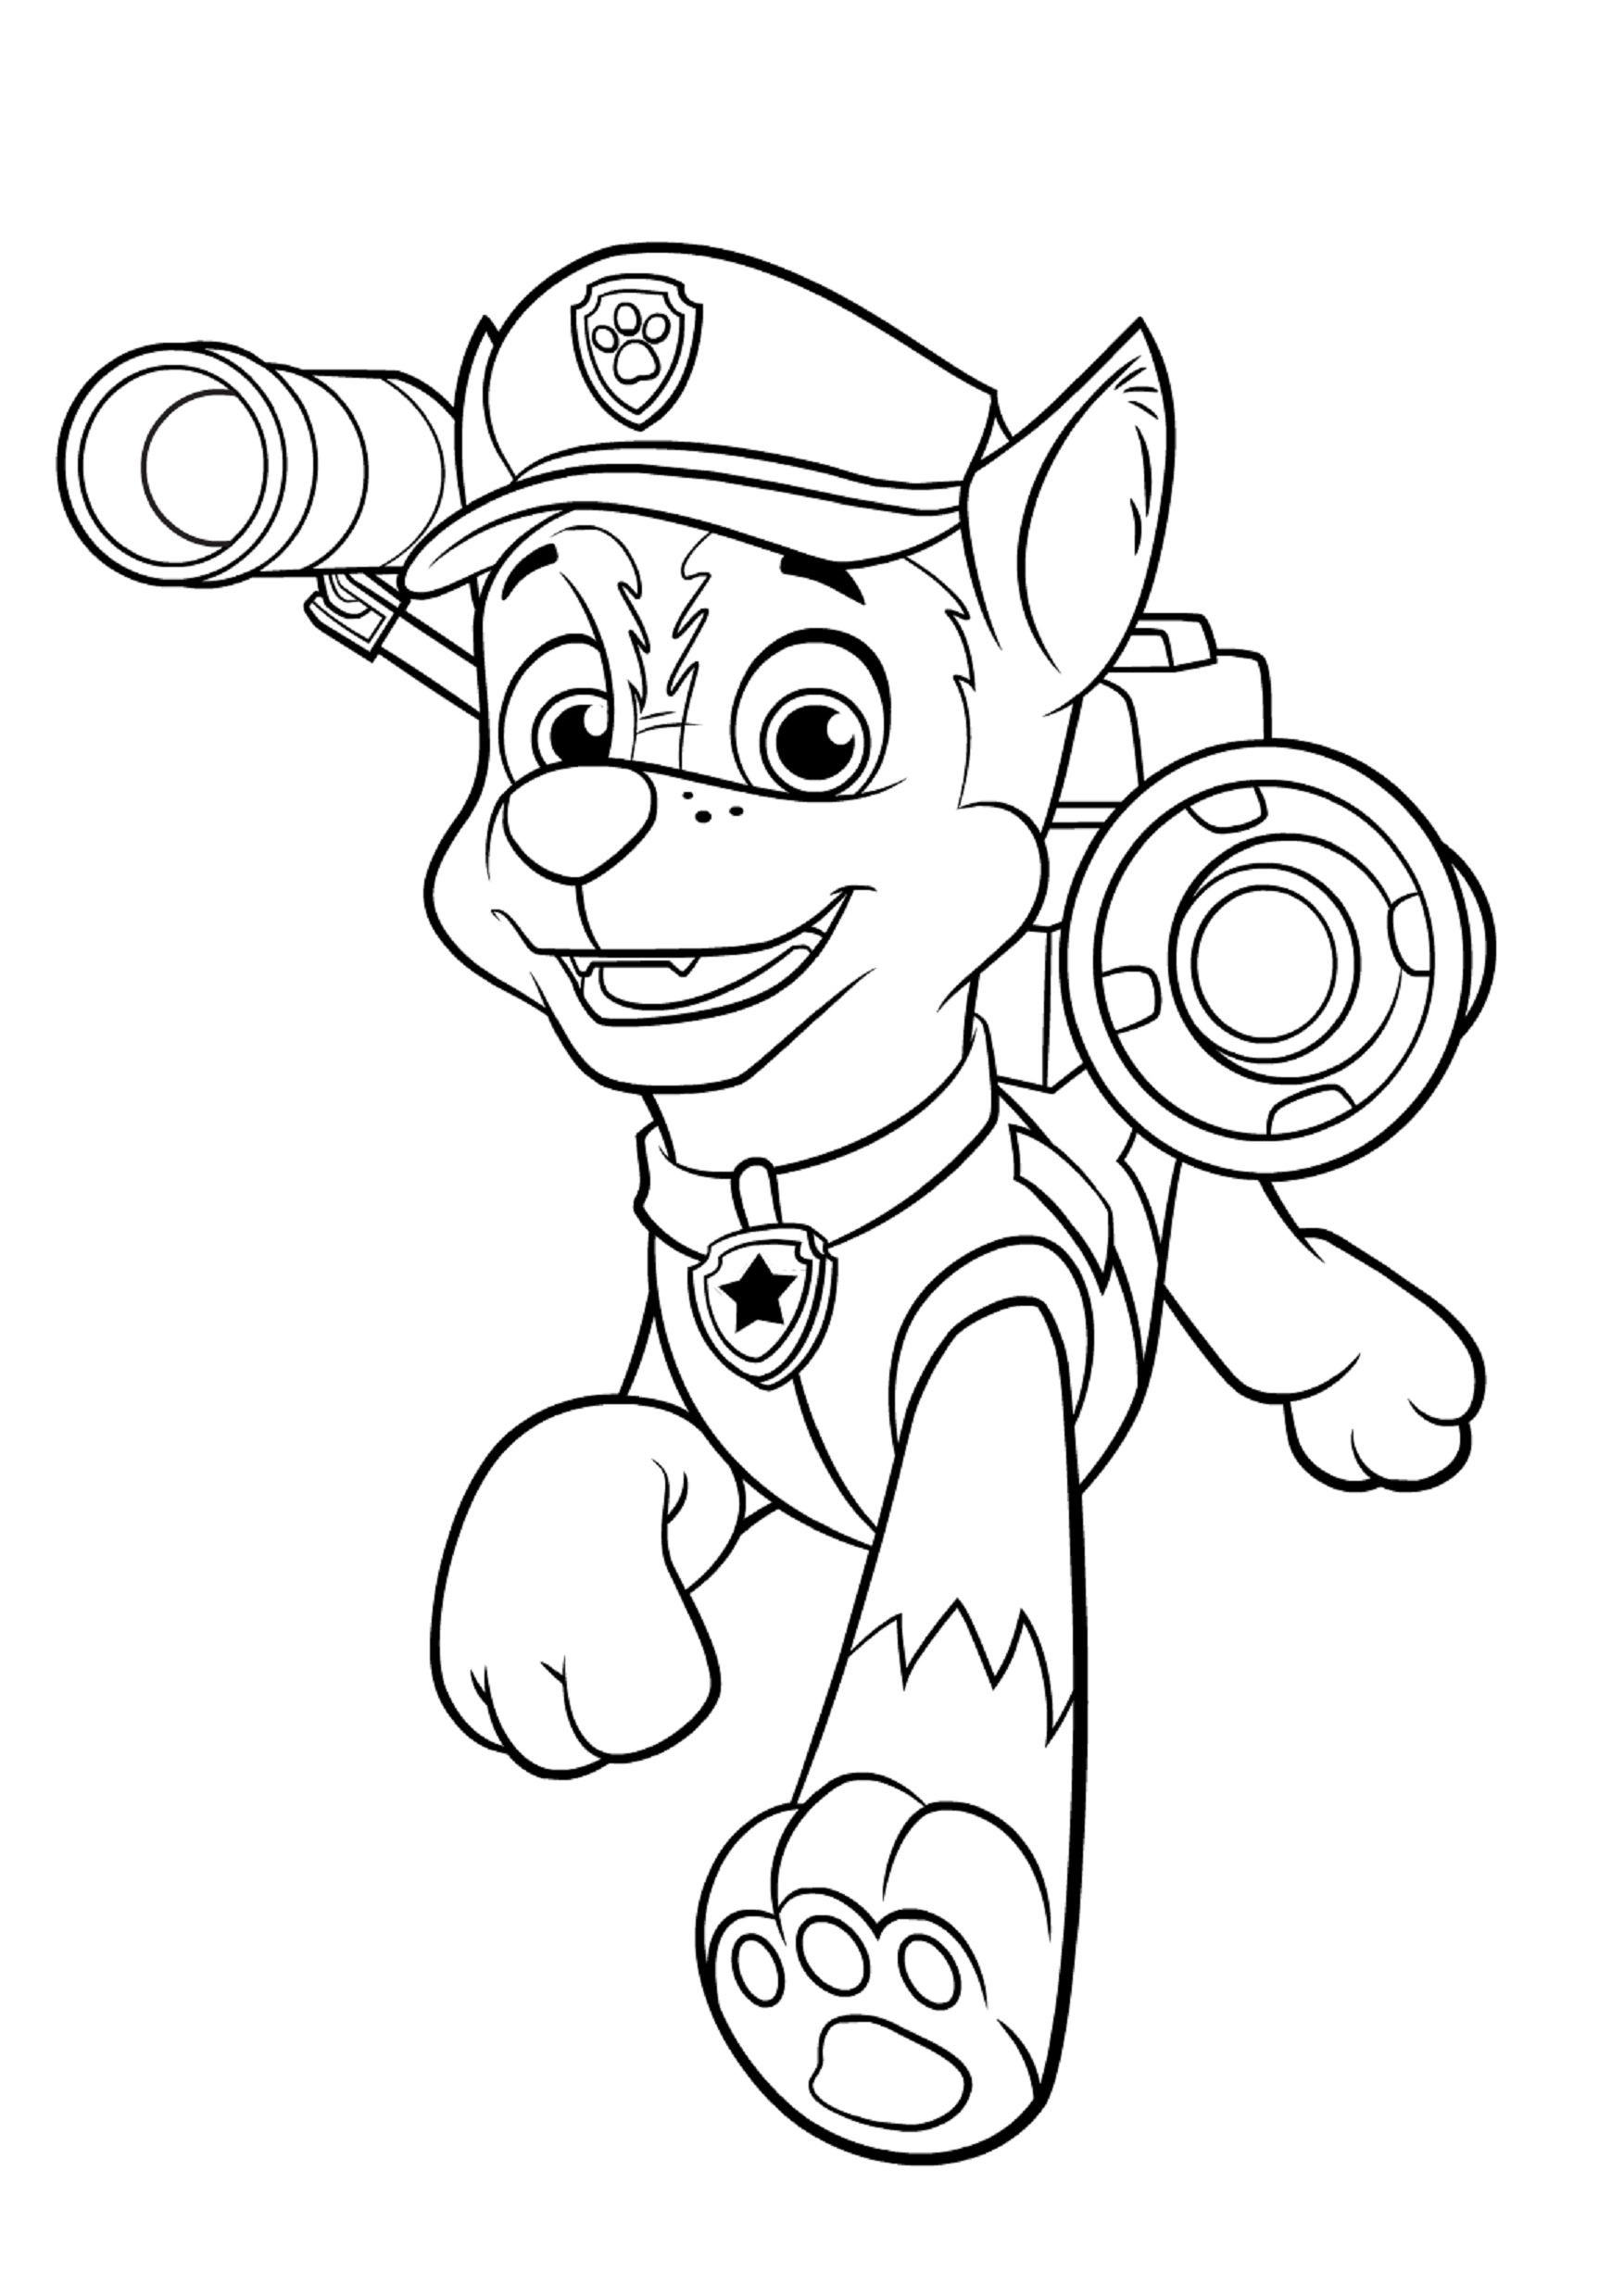 paw patrol for coloring chase paw patrol coloring pages to download and print for free for patrol paw coloring